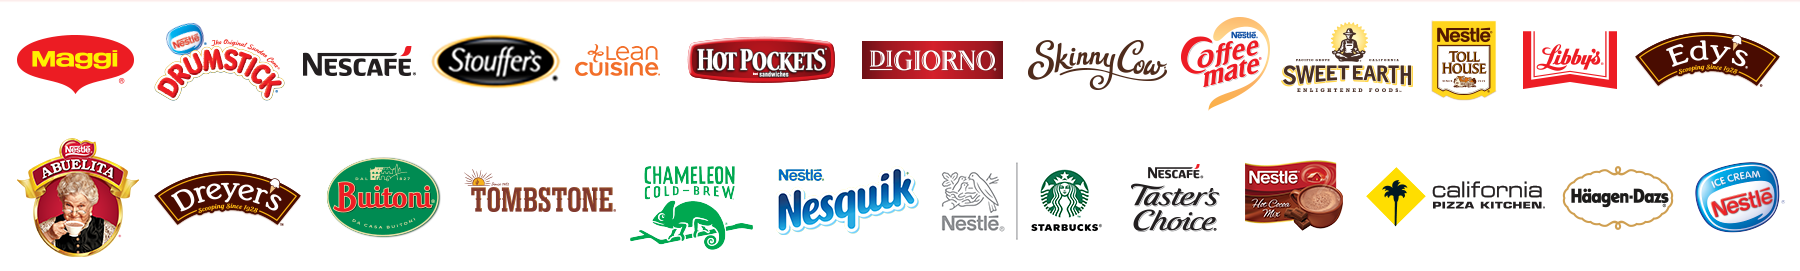 Nestlé Family of Brands